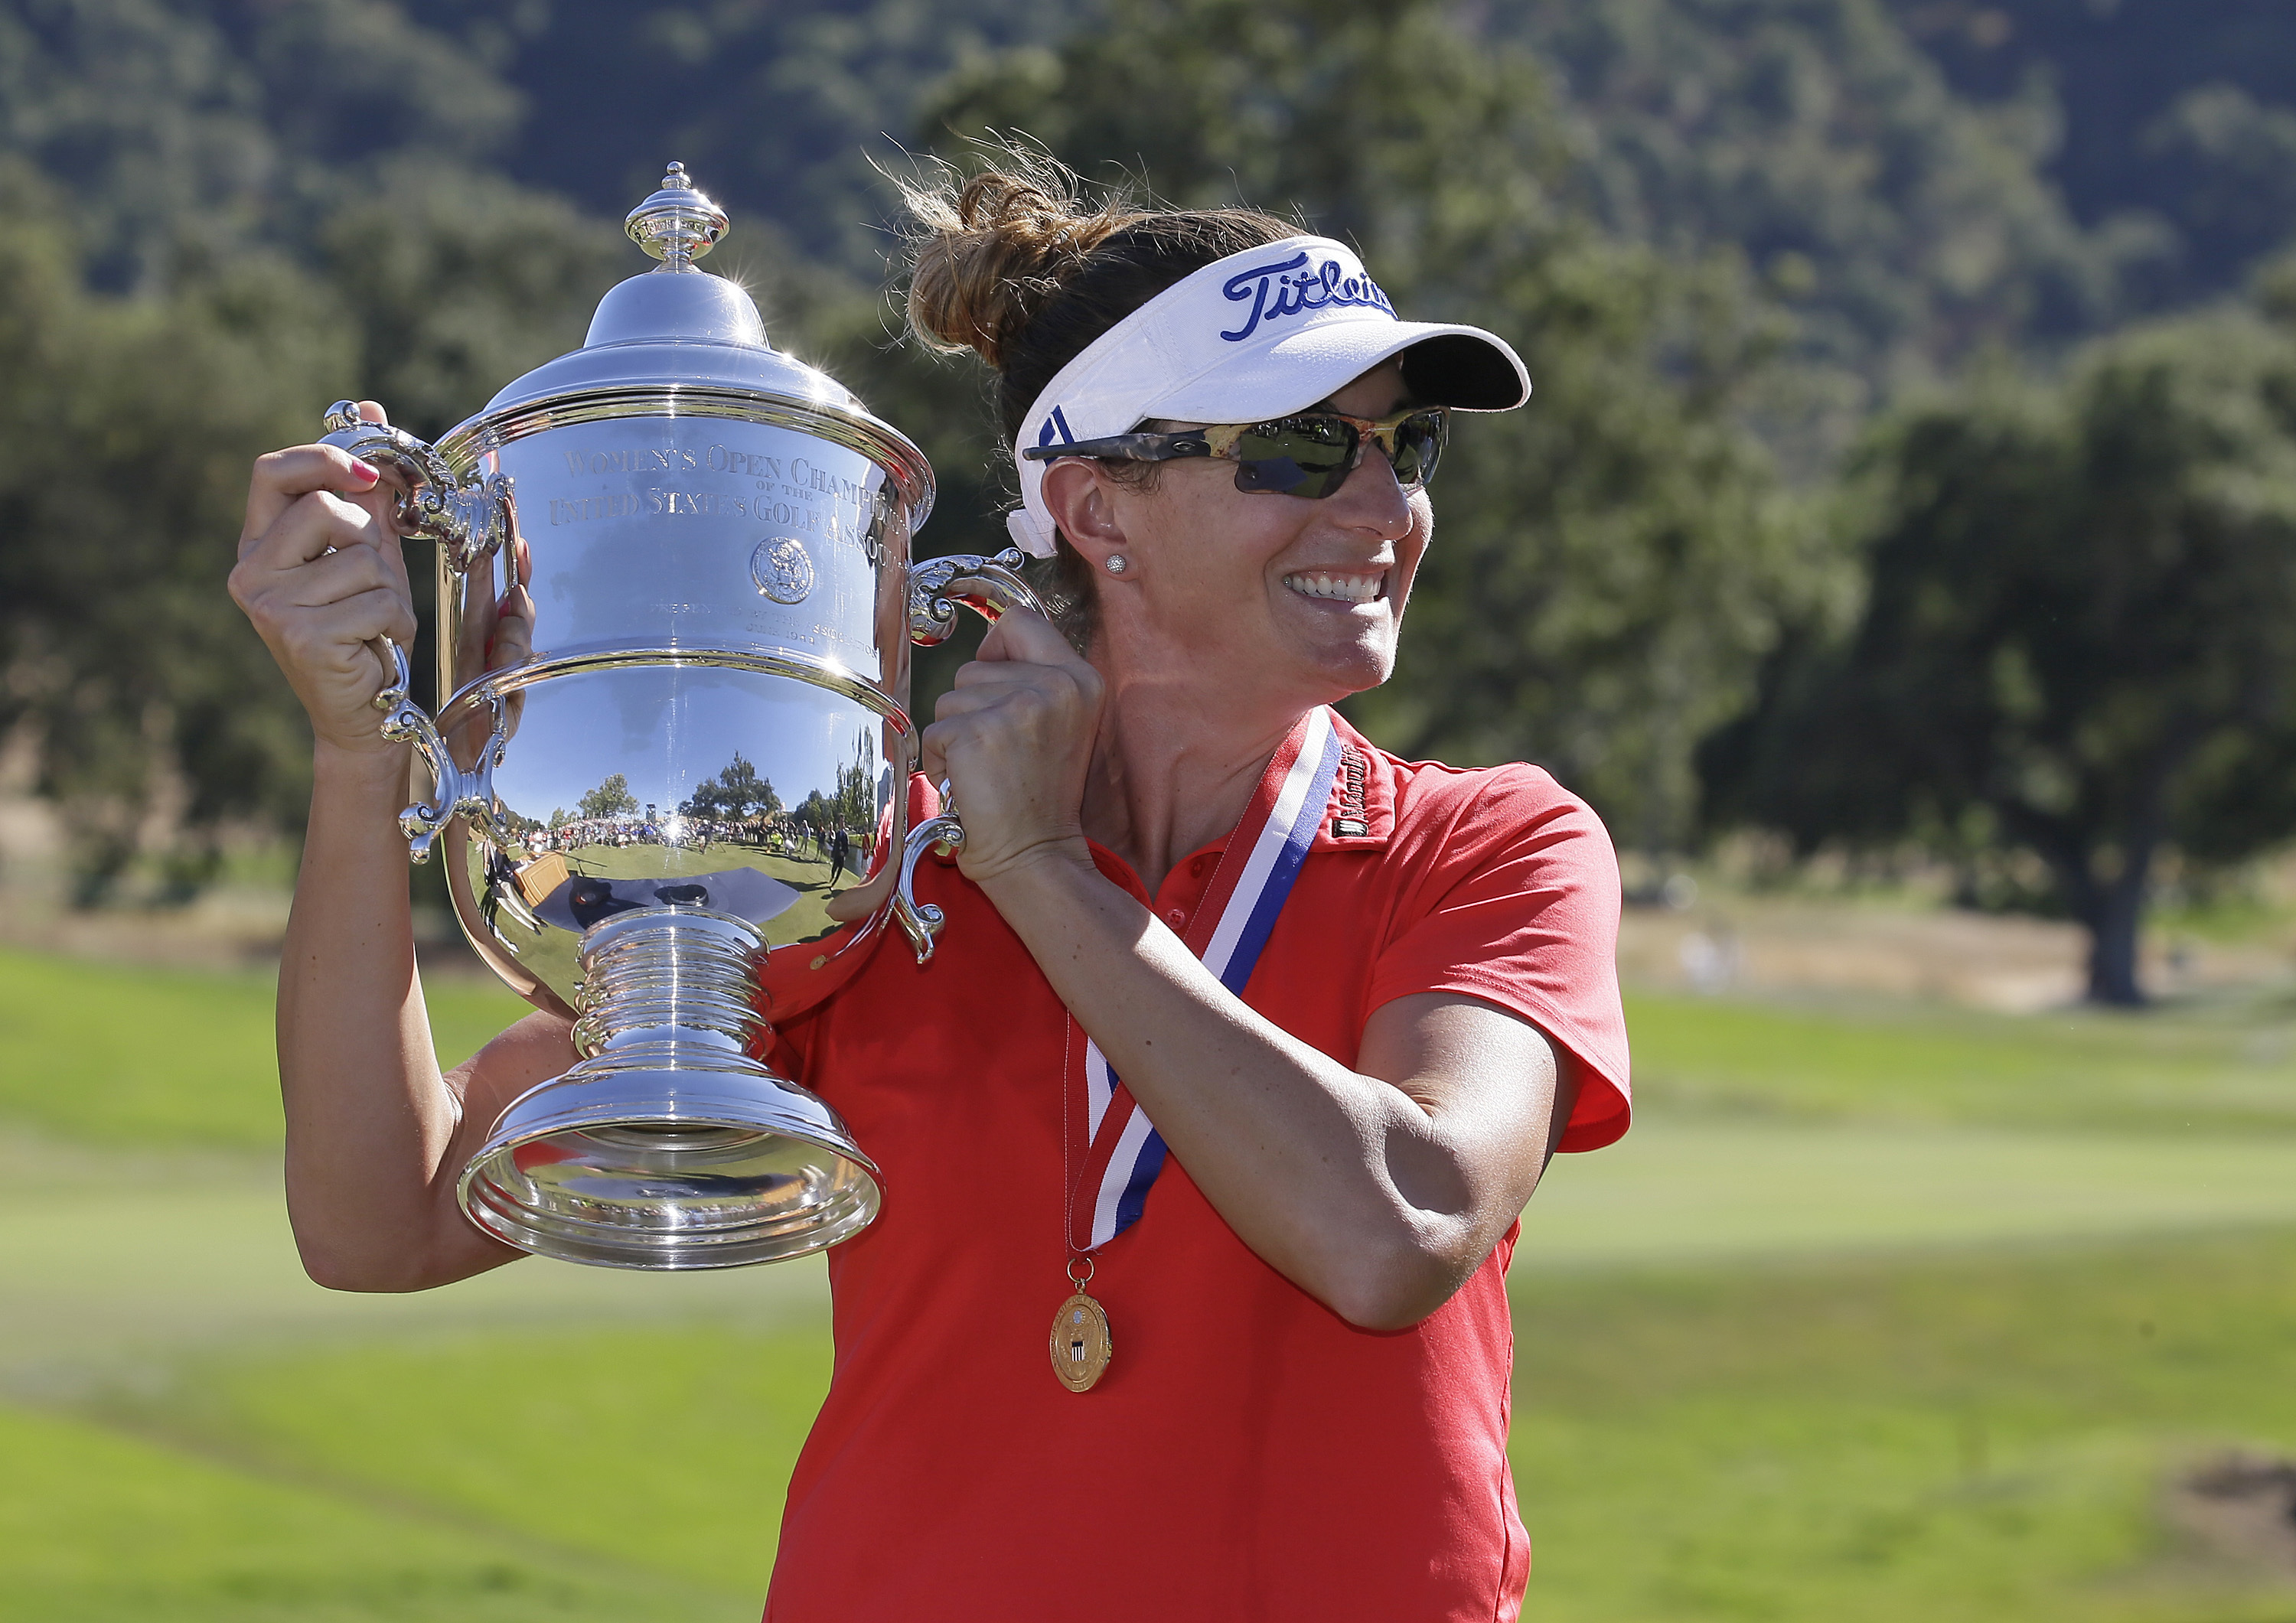 Brittany Lang holds up her trophy on the 18th green after winning the U.S. Women's Open golf tournament at CordeValle, Sunday, July 10, 2016, in San Martin, Calif. (AP Photo/Eric Risberg)